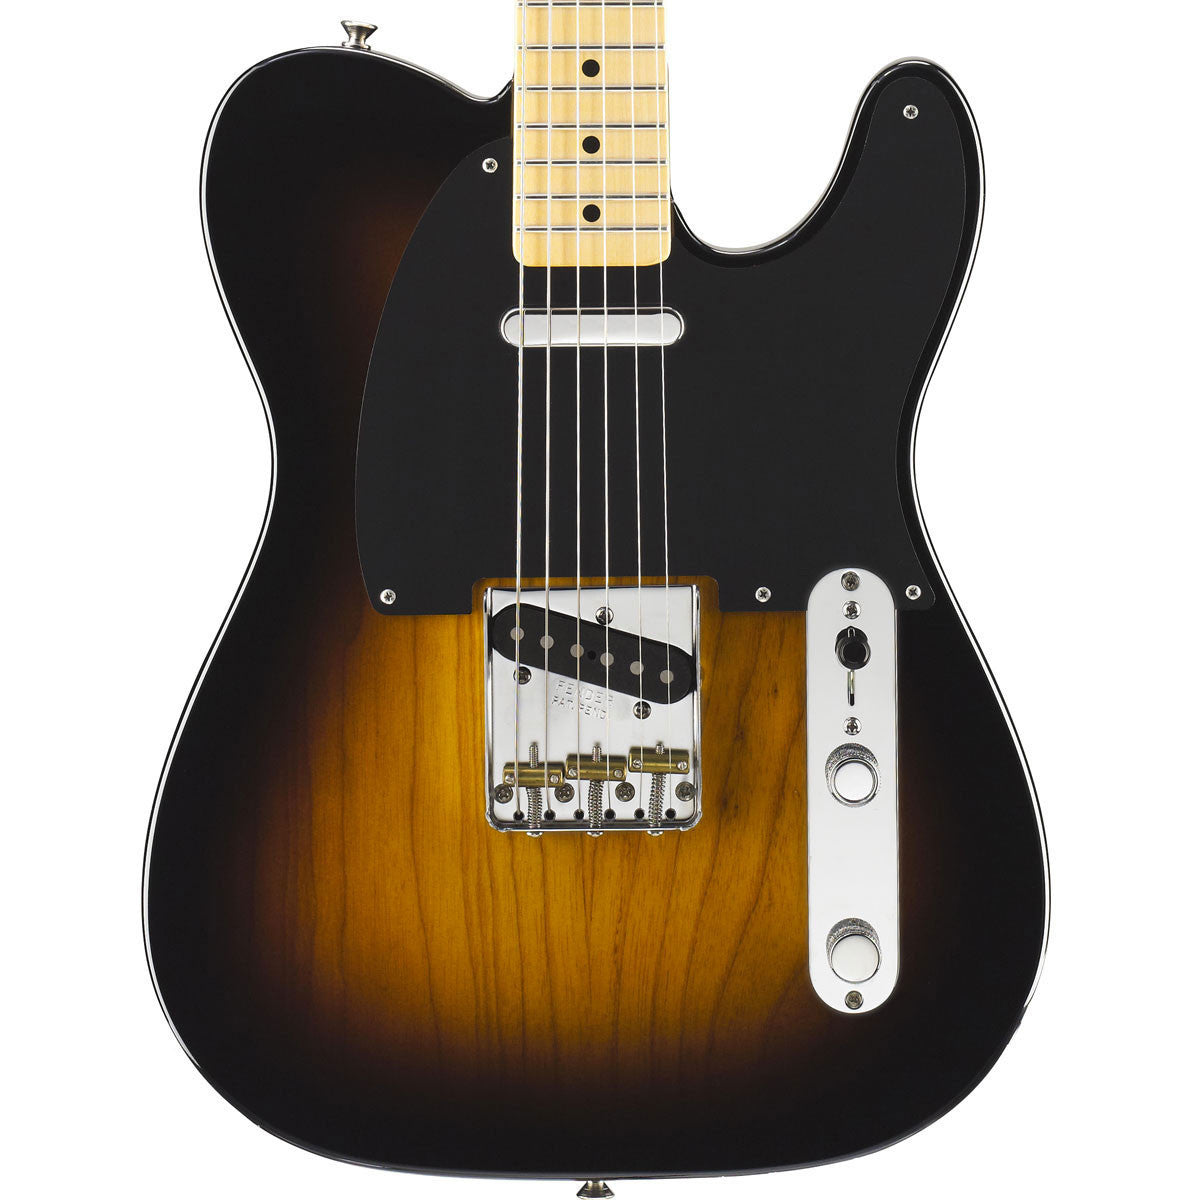 Fender Classic Player Baja Telecaster - Maple - 2 Tone Sunburst - Vintage Guitar Boutique - 1